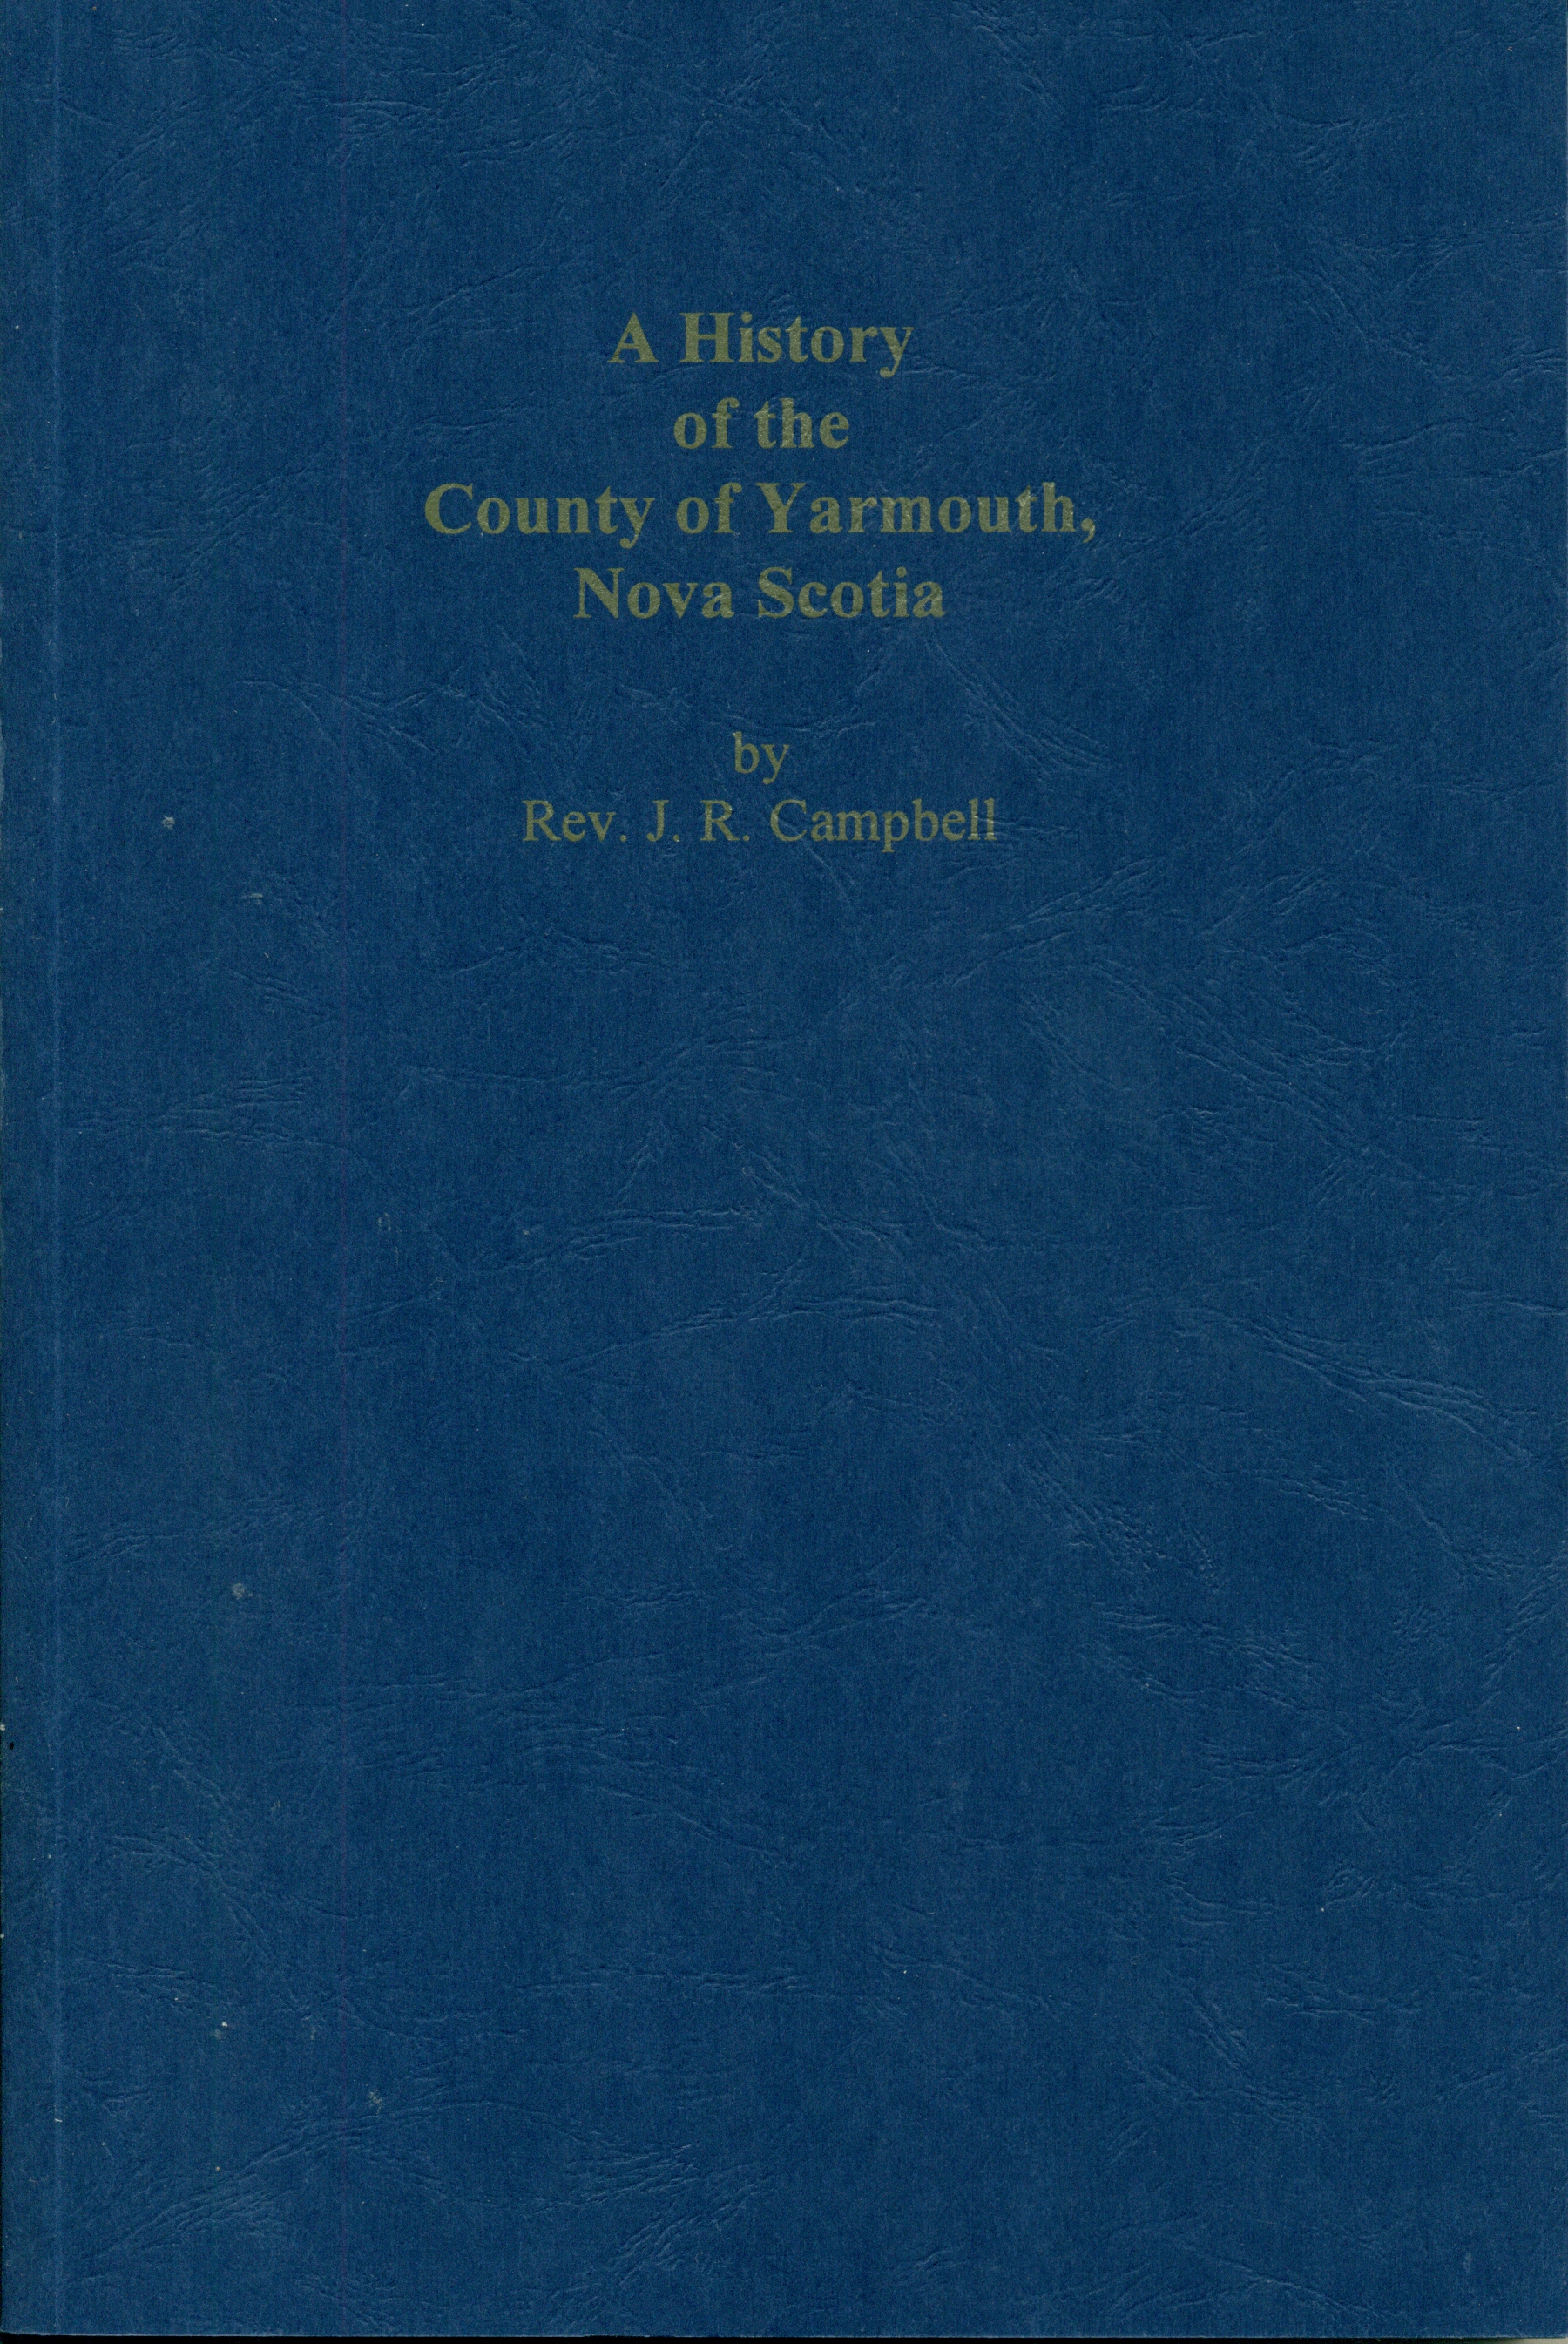 History of the County of Yarmouth, NS